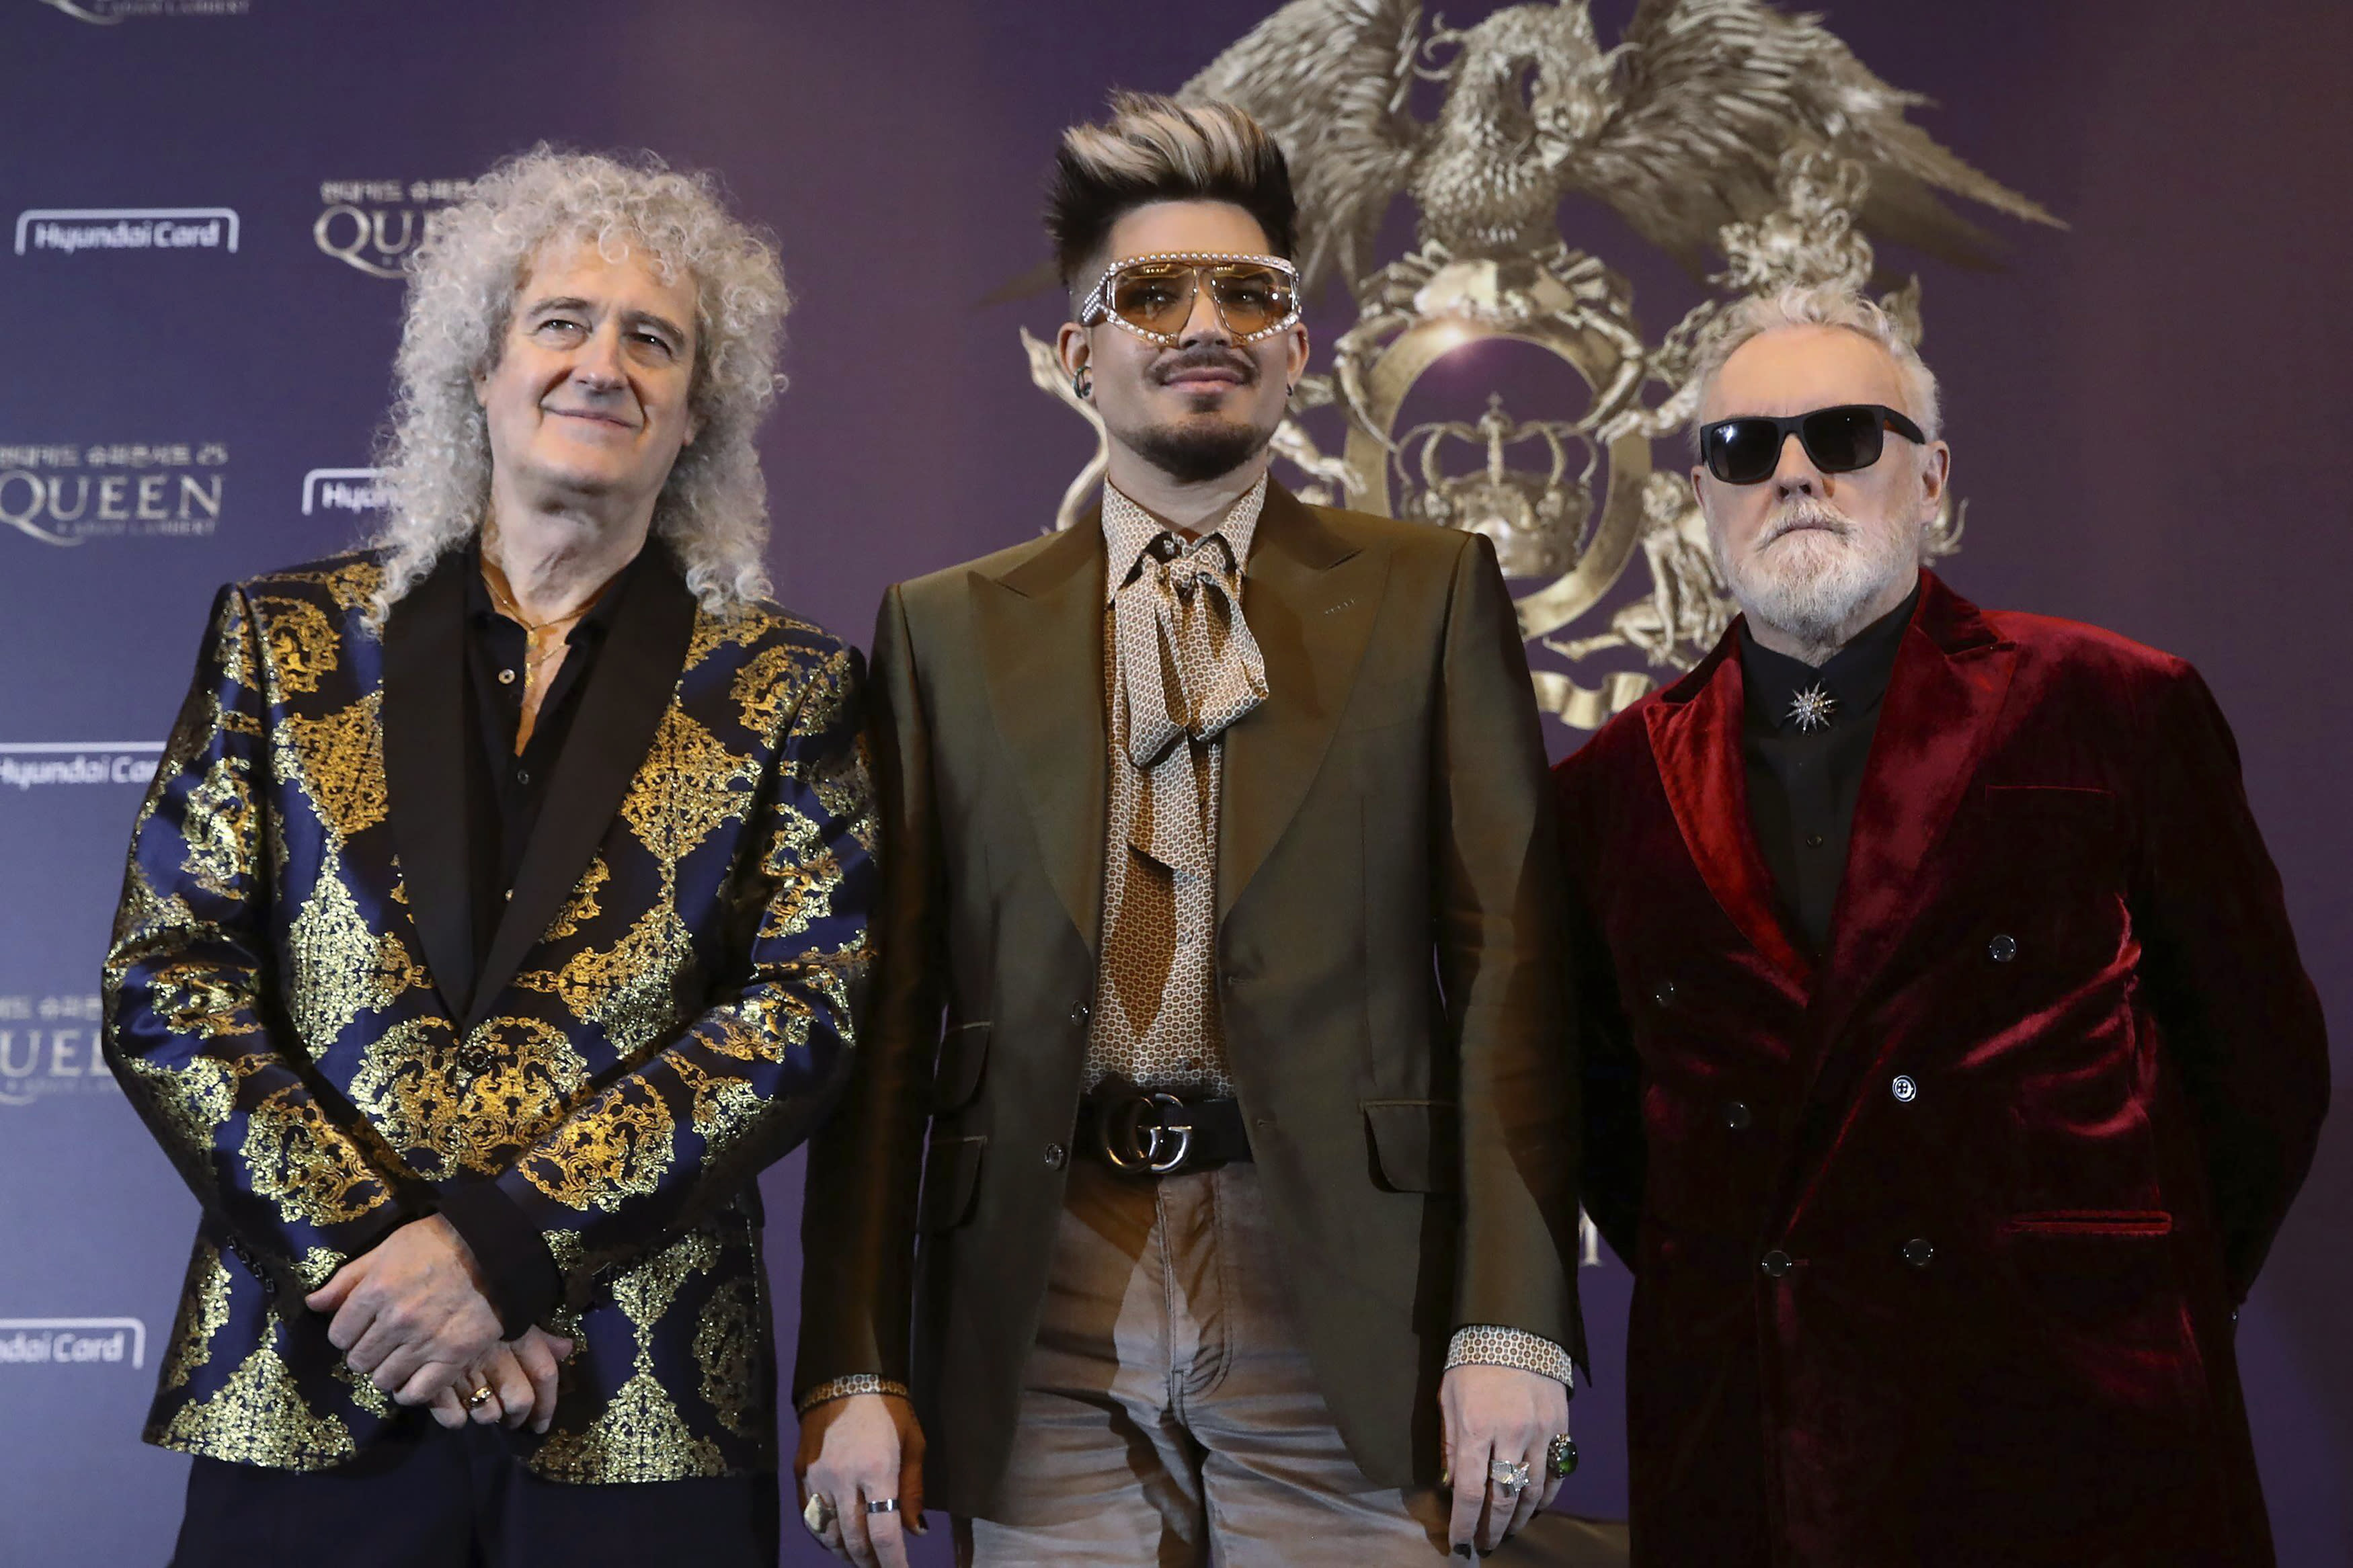 Adam Lambert and Queen reenact iconic Live Aid concert for first time since 1985